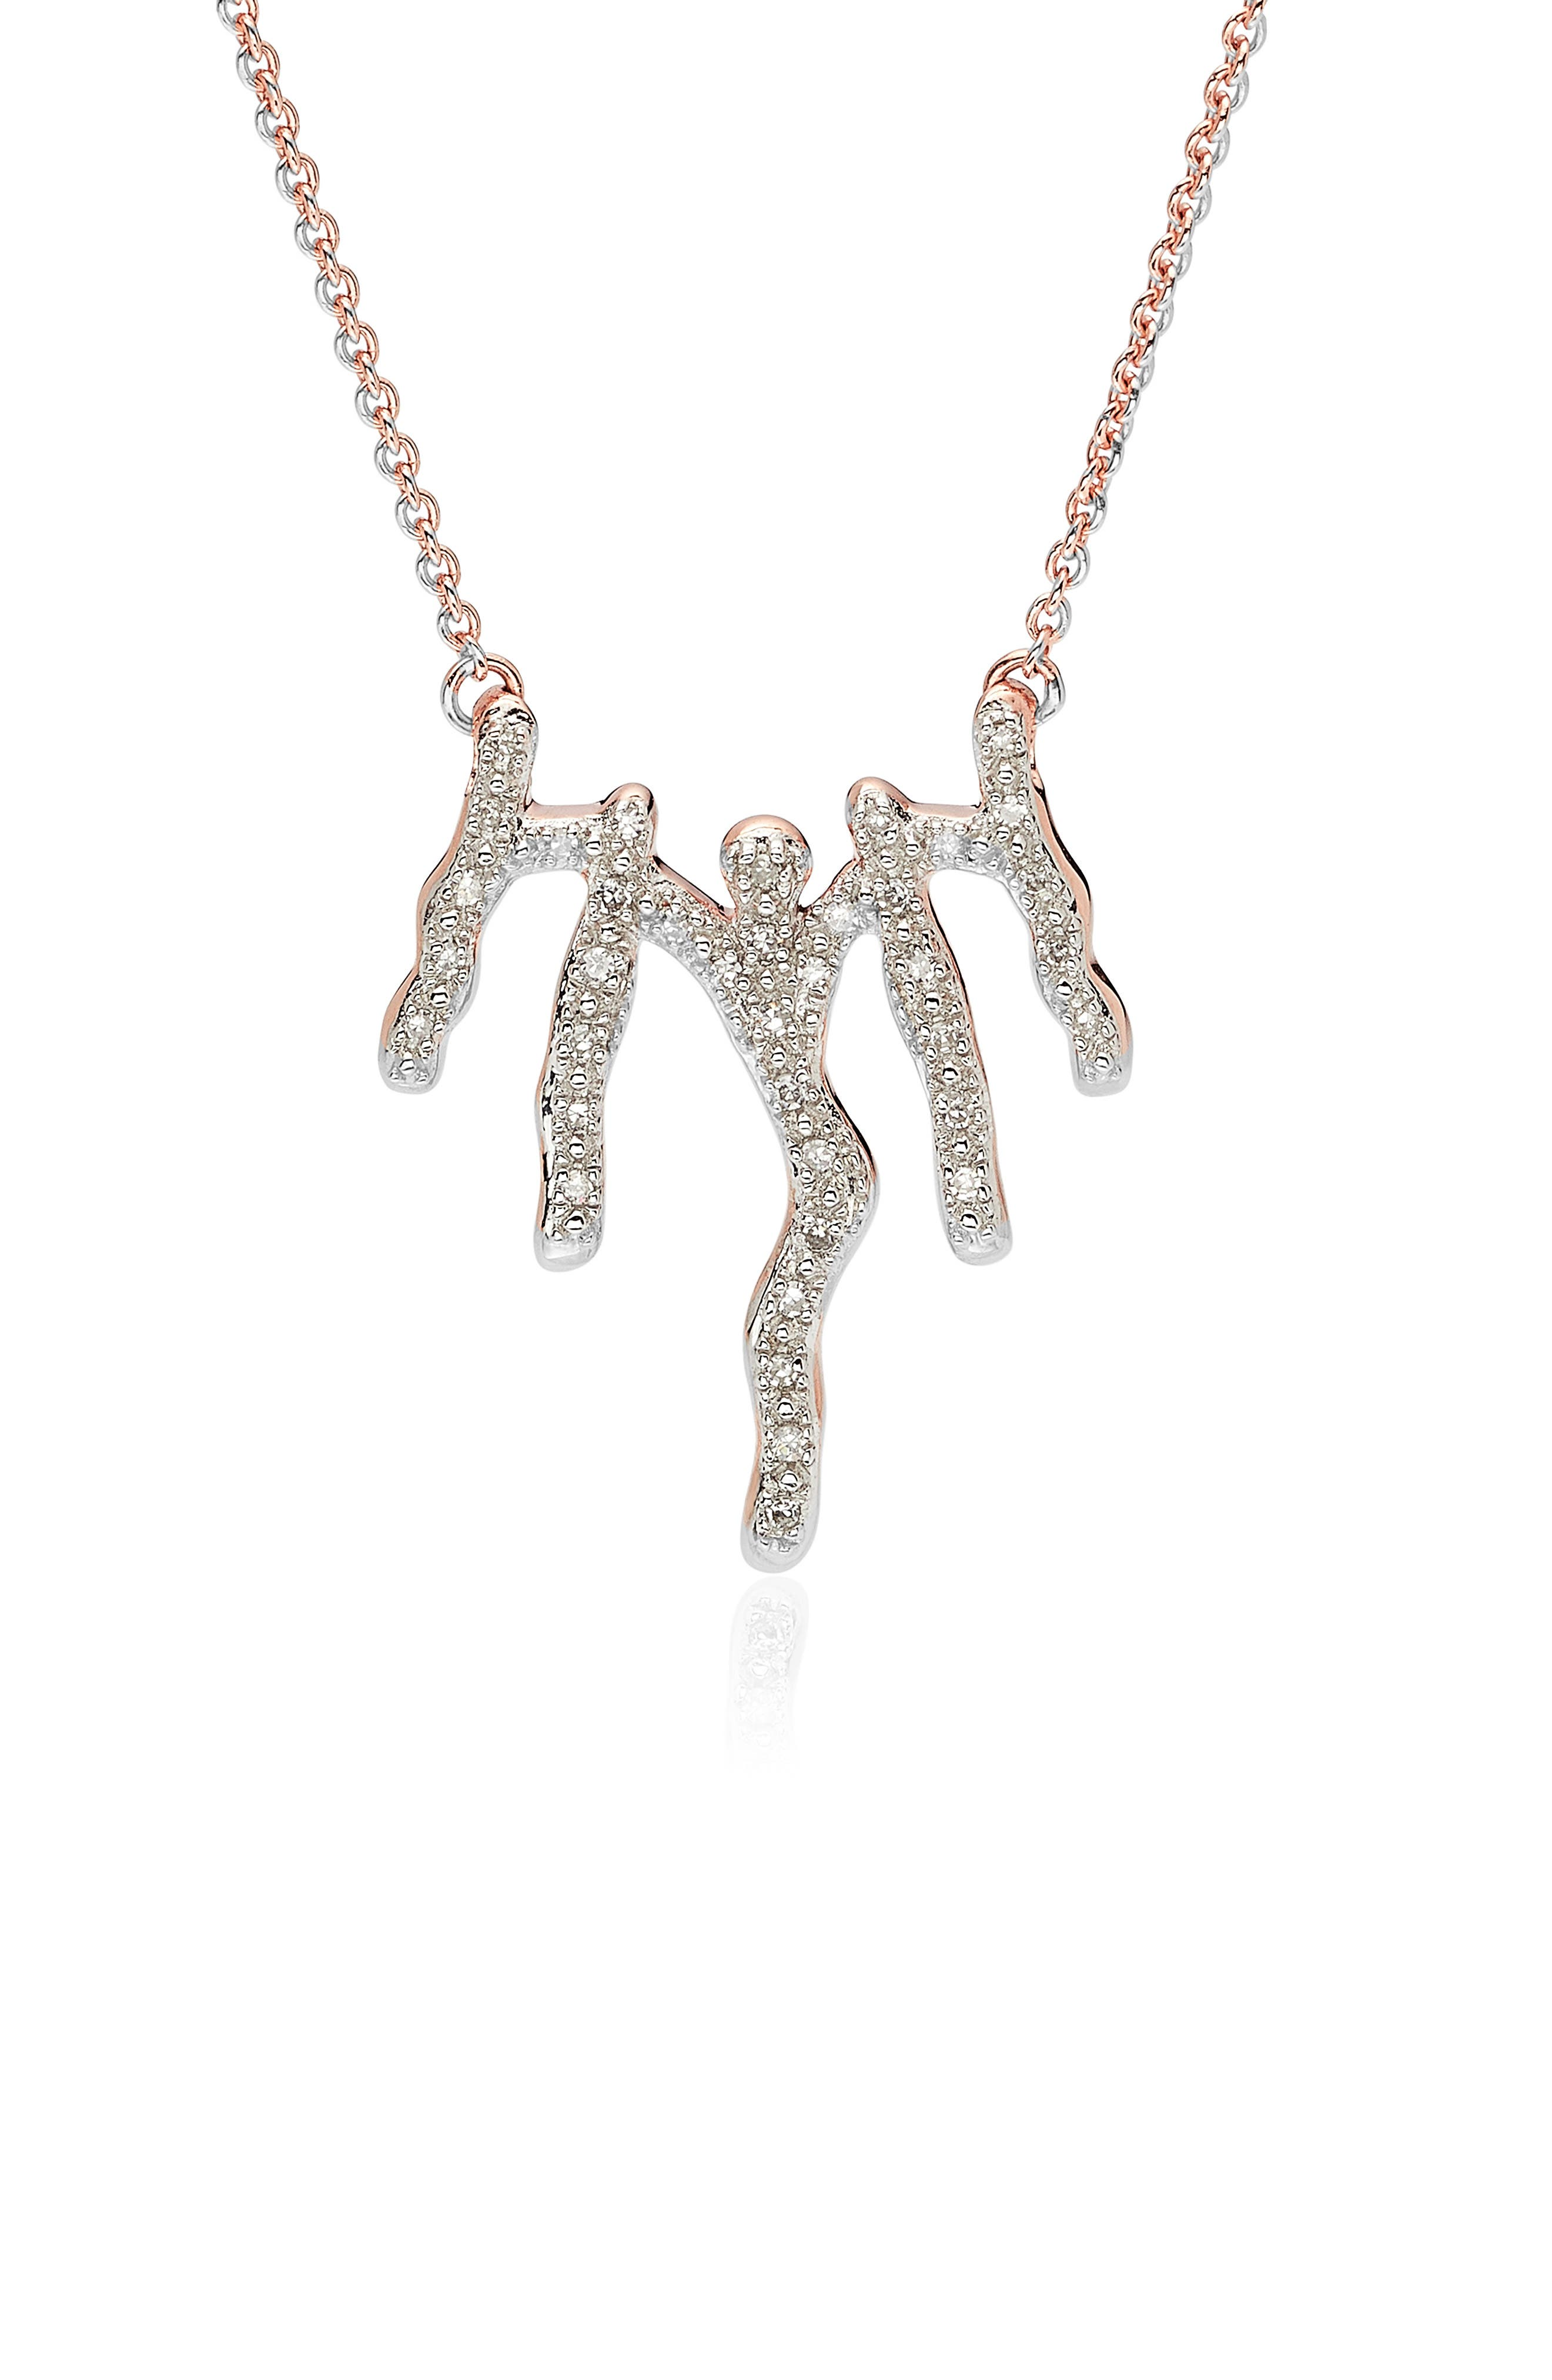 MONICA VINADER Riva Waterfall Diamond Necklace, Main, color, ROSE GOLD/ DIAMOND